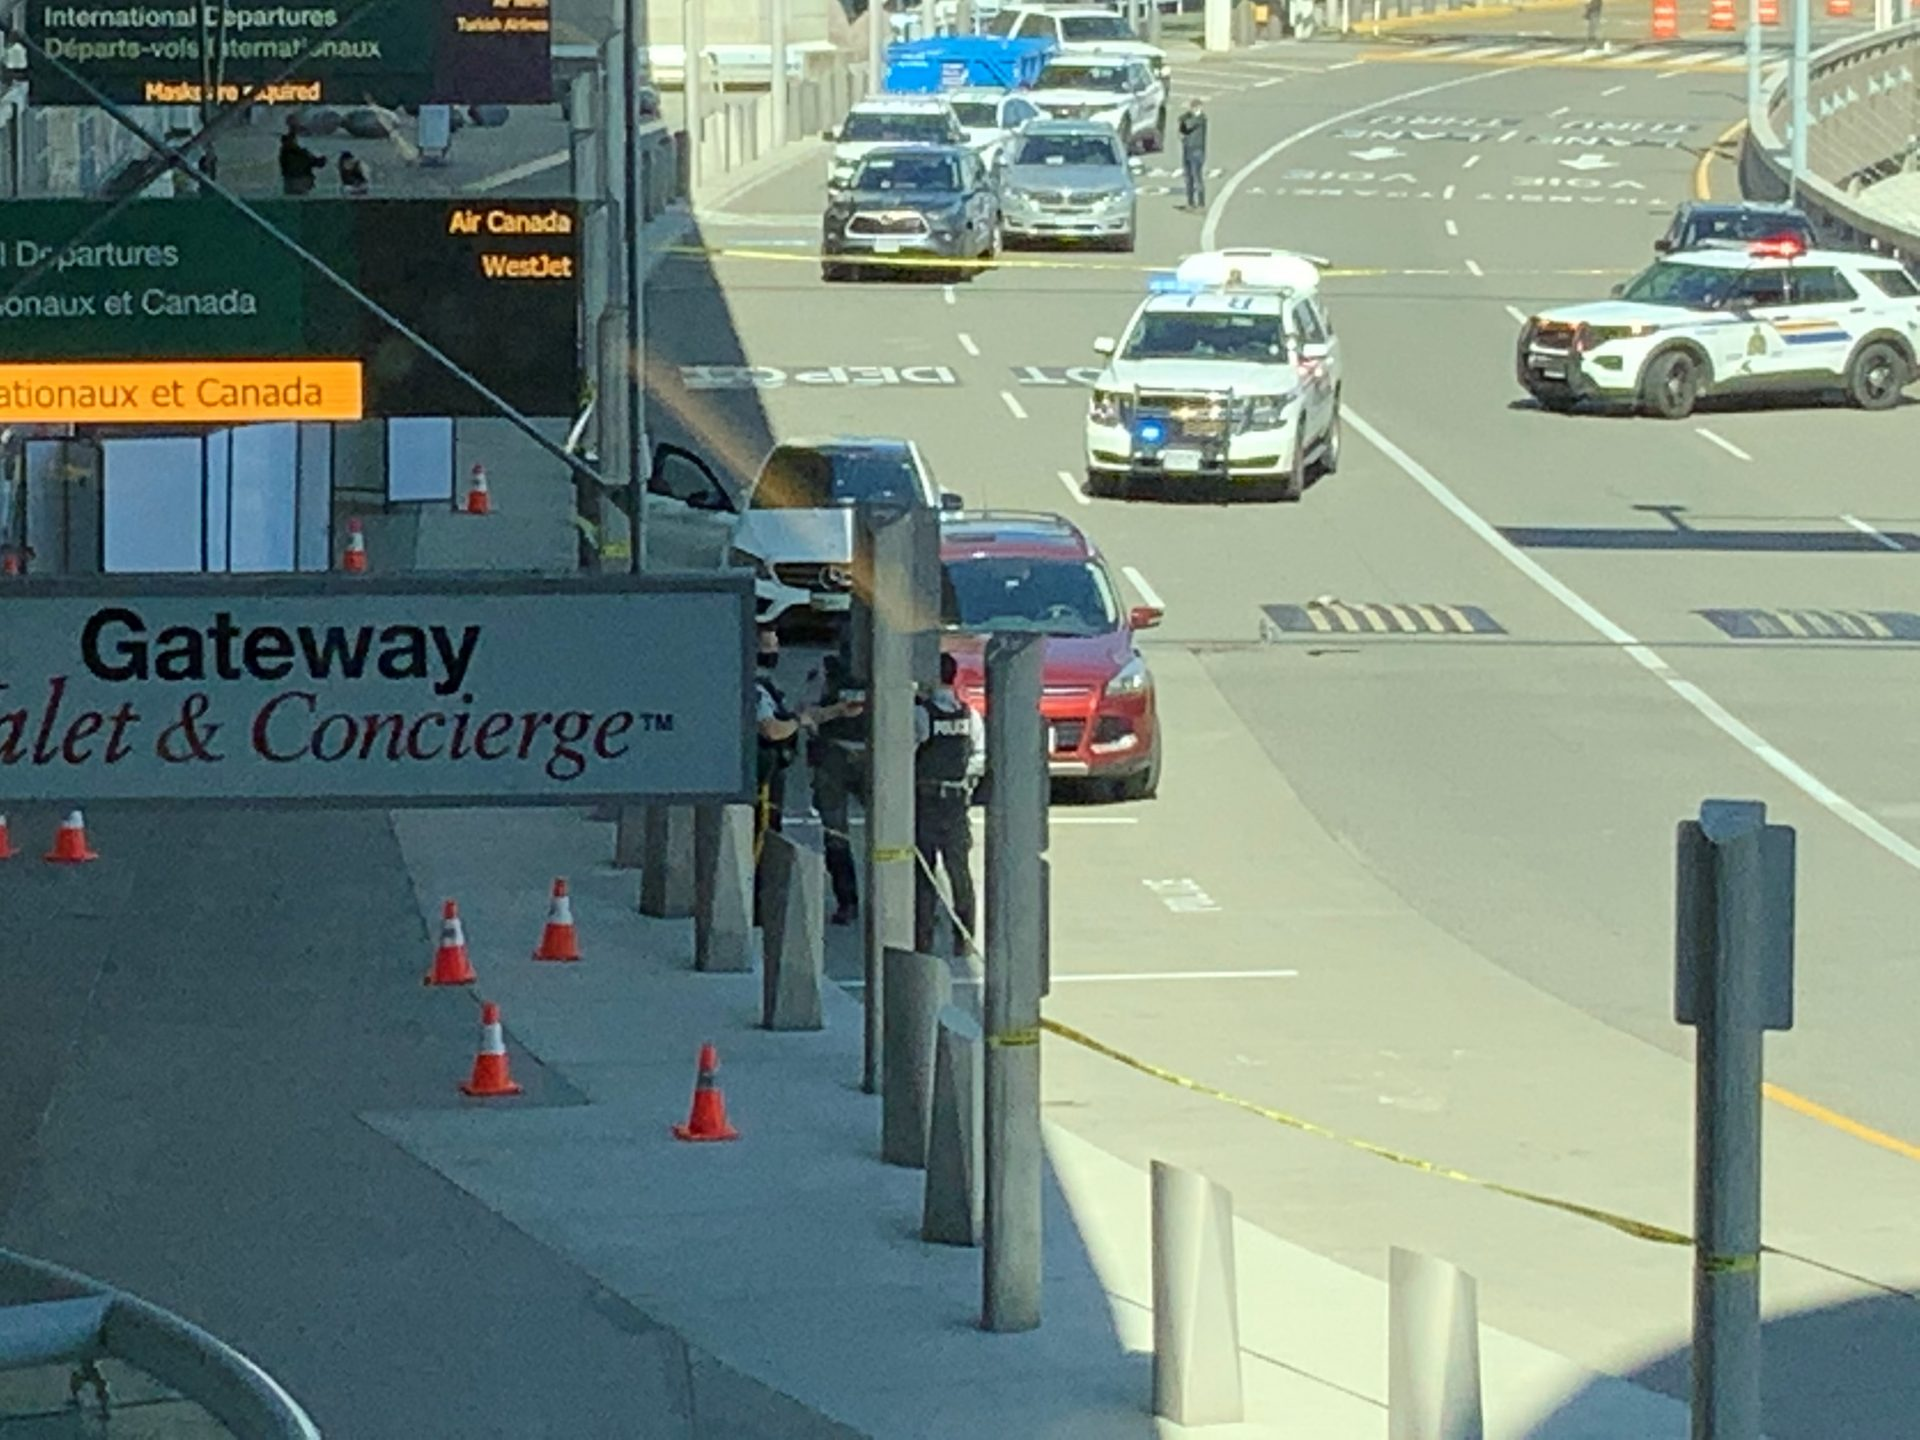 Vancouver airport shooting